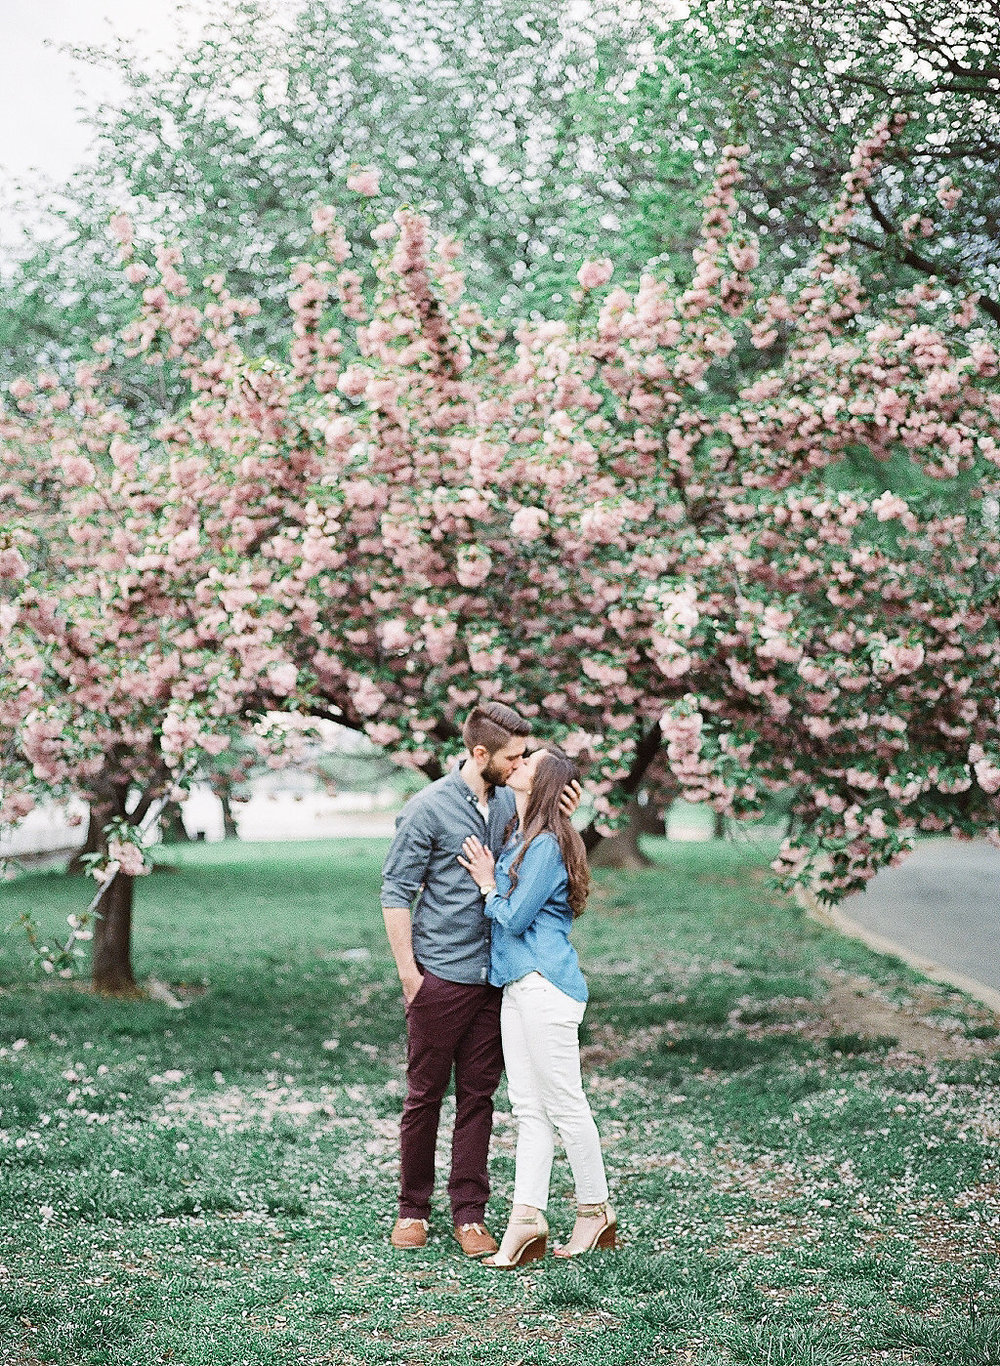 Cherry Blossom Engagement Photography | Andrea Rodway Photography